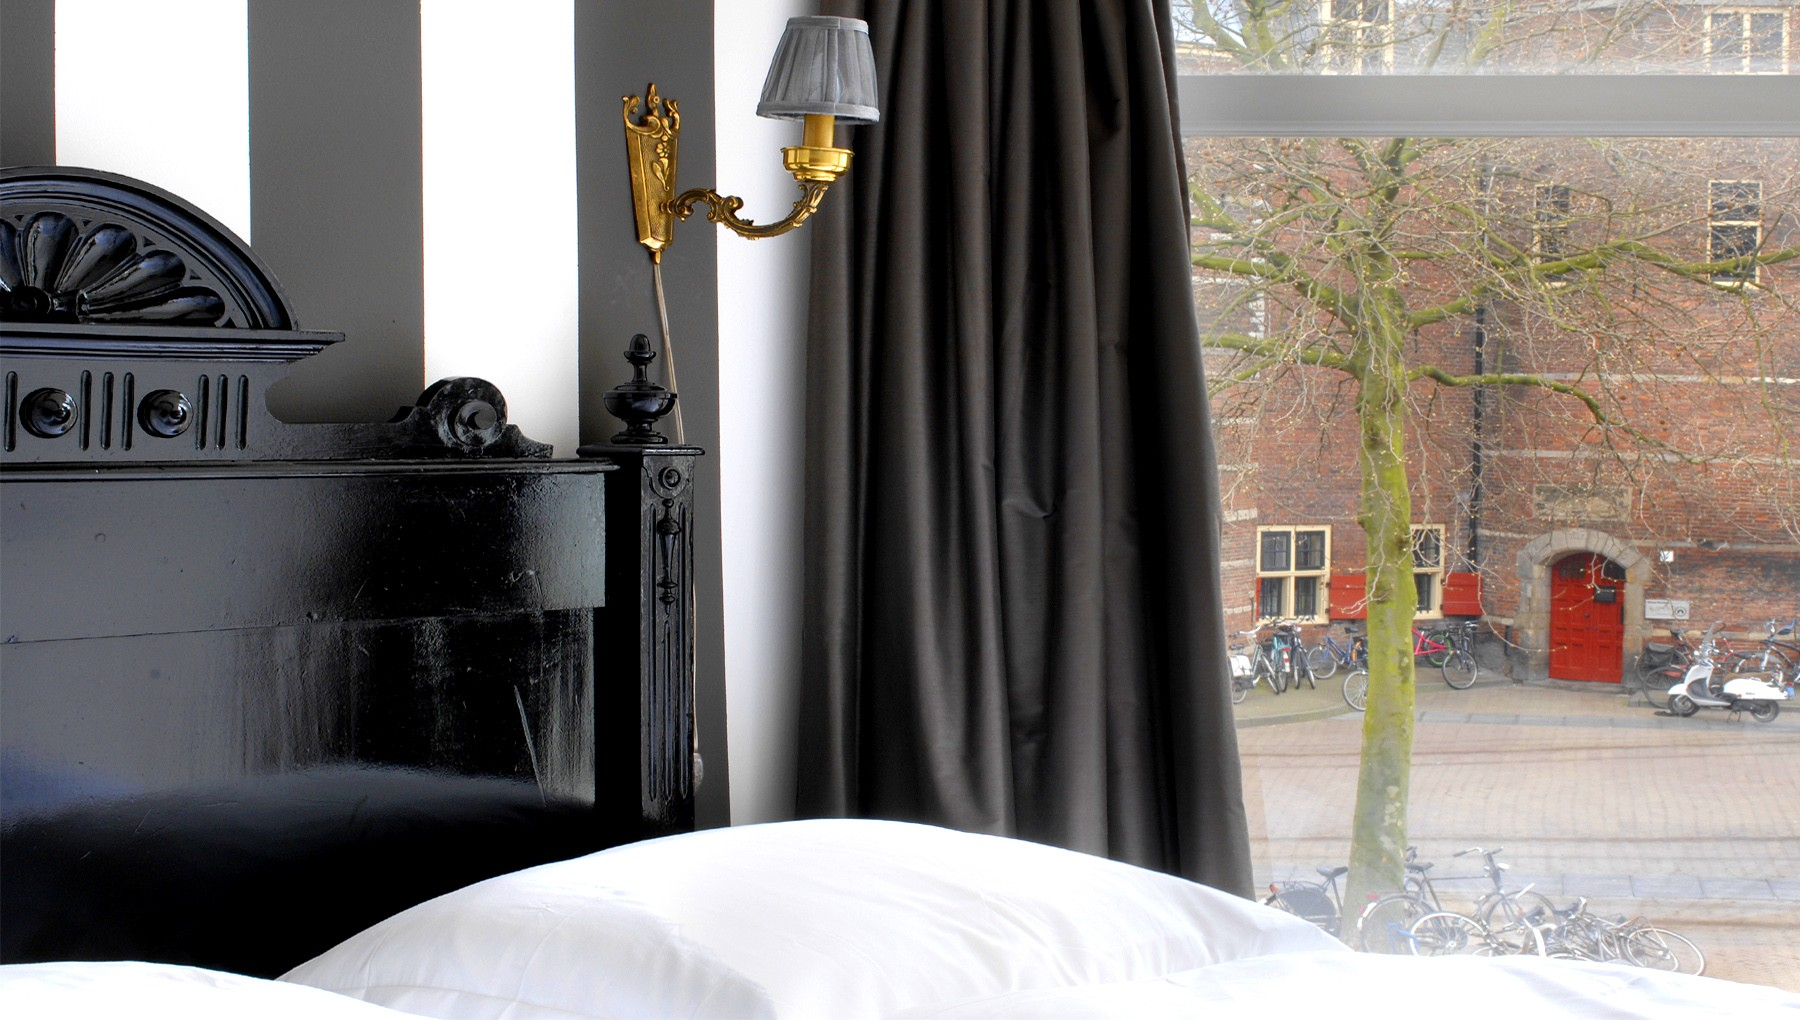 inn old amsterdam b b i amsterdam. Black Bedroom Furniture Sets. Home Design Ideas